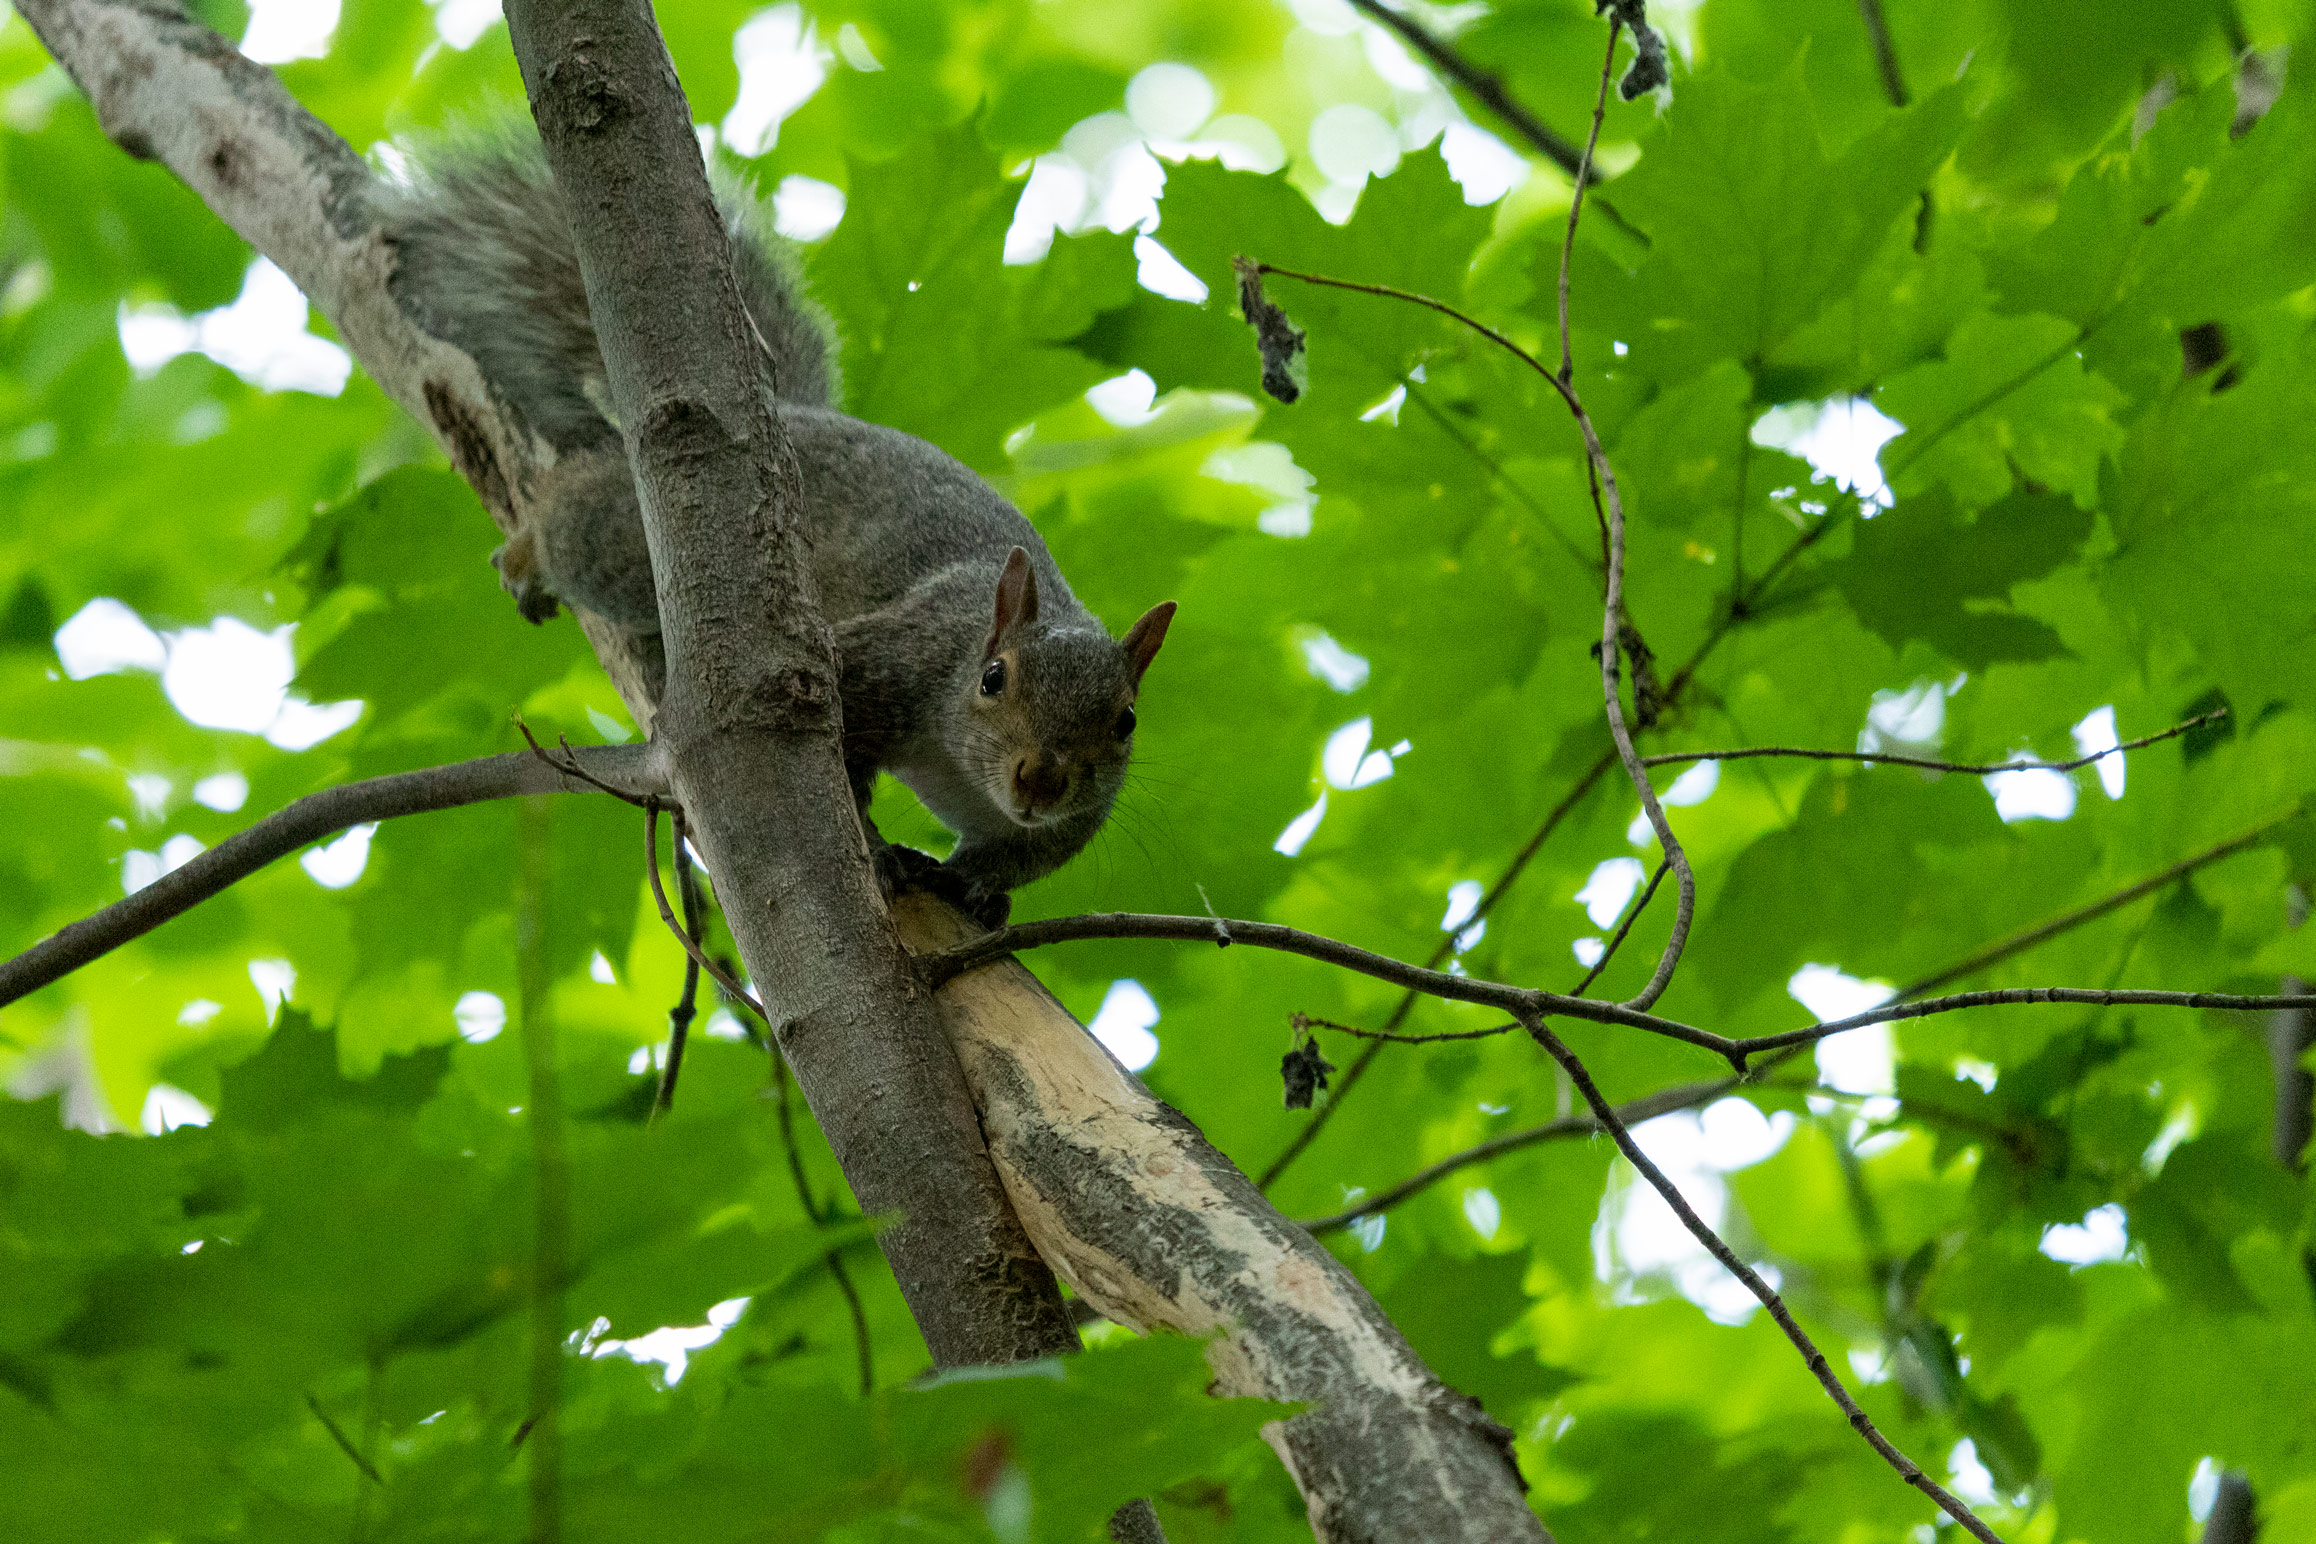 Squirrel on a tree branch looking at you